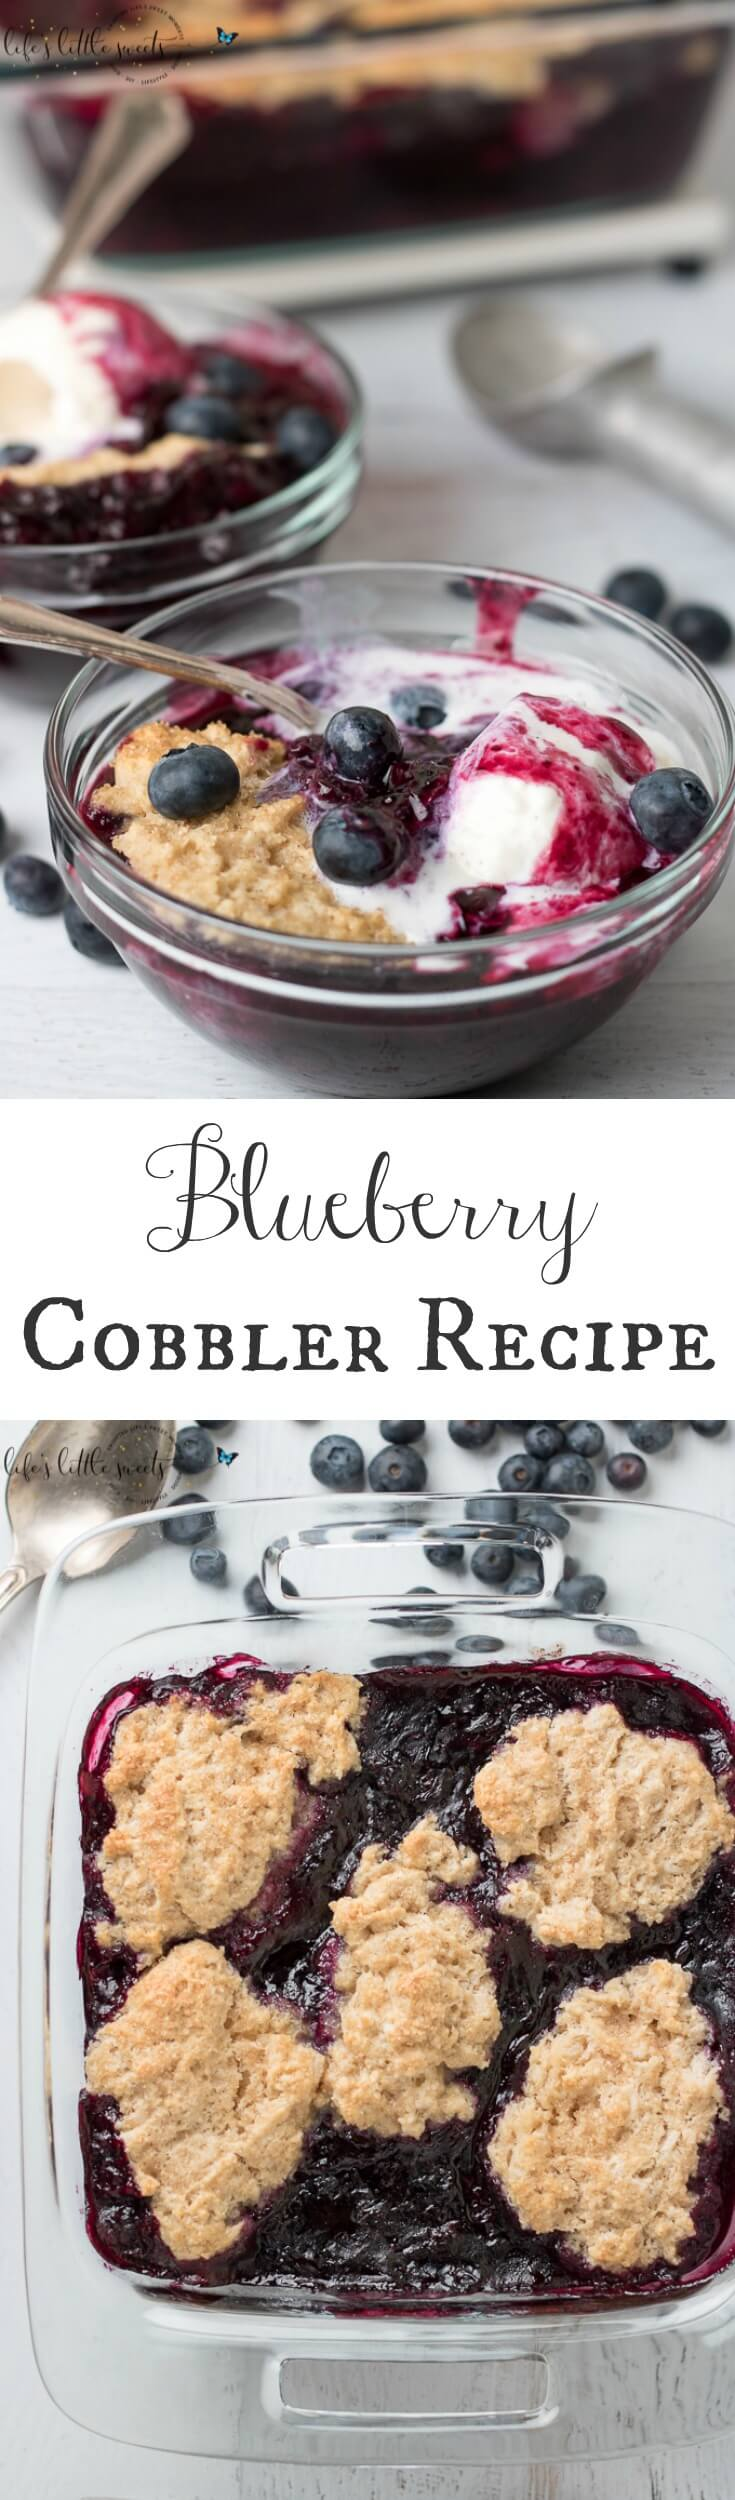 This Blueberry Cobbler has fresh, ripe blueberries with a crisp, biscuit on top. It's spiced with a secret ingredient to bring out the flavor of those blueberries. It's wonderful on it's own or served with vanilla ice cream or whipped cream! #blueberry #cobbler #blueberrycobbler #icecream #blueberries #sweet #dessert